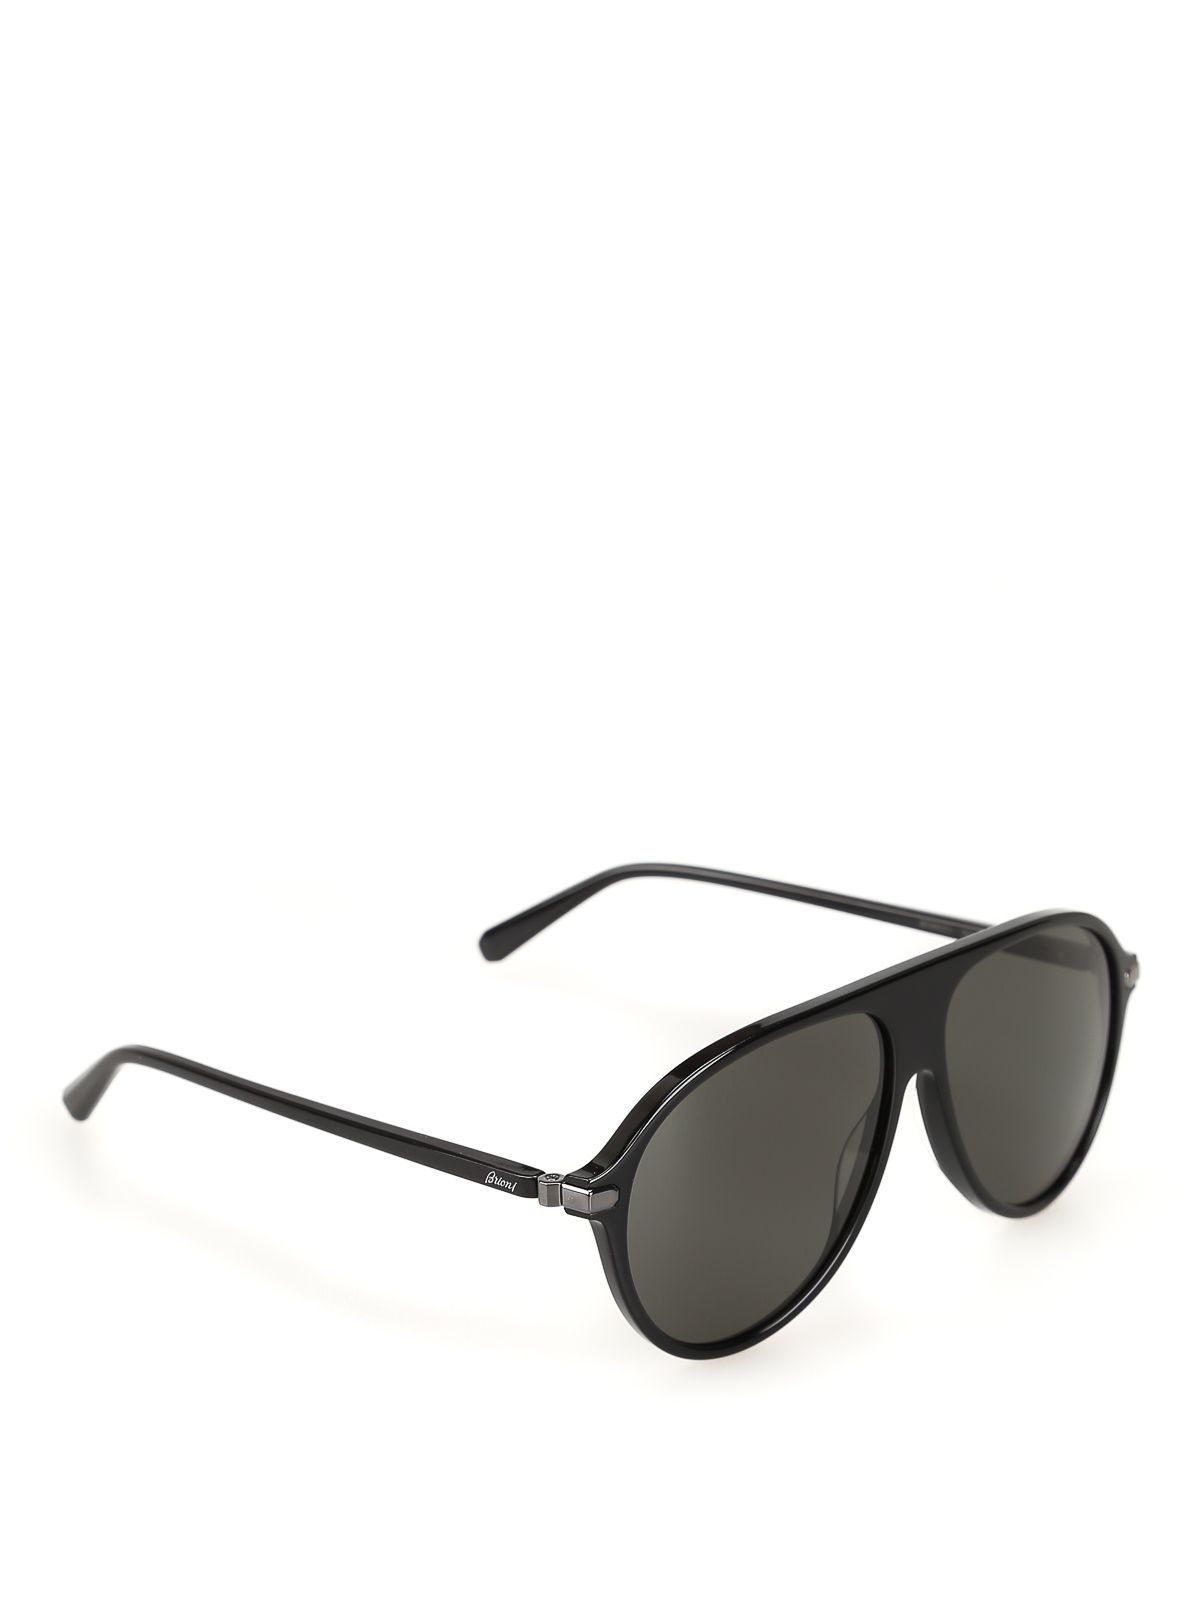 BRIONI BLACK ACETATE SUNGLASSES. #brioni